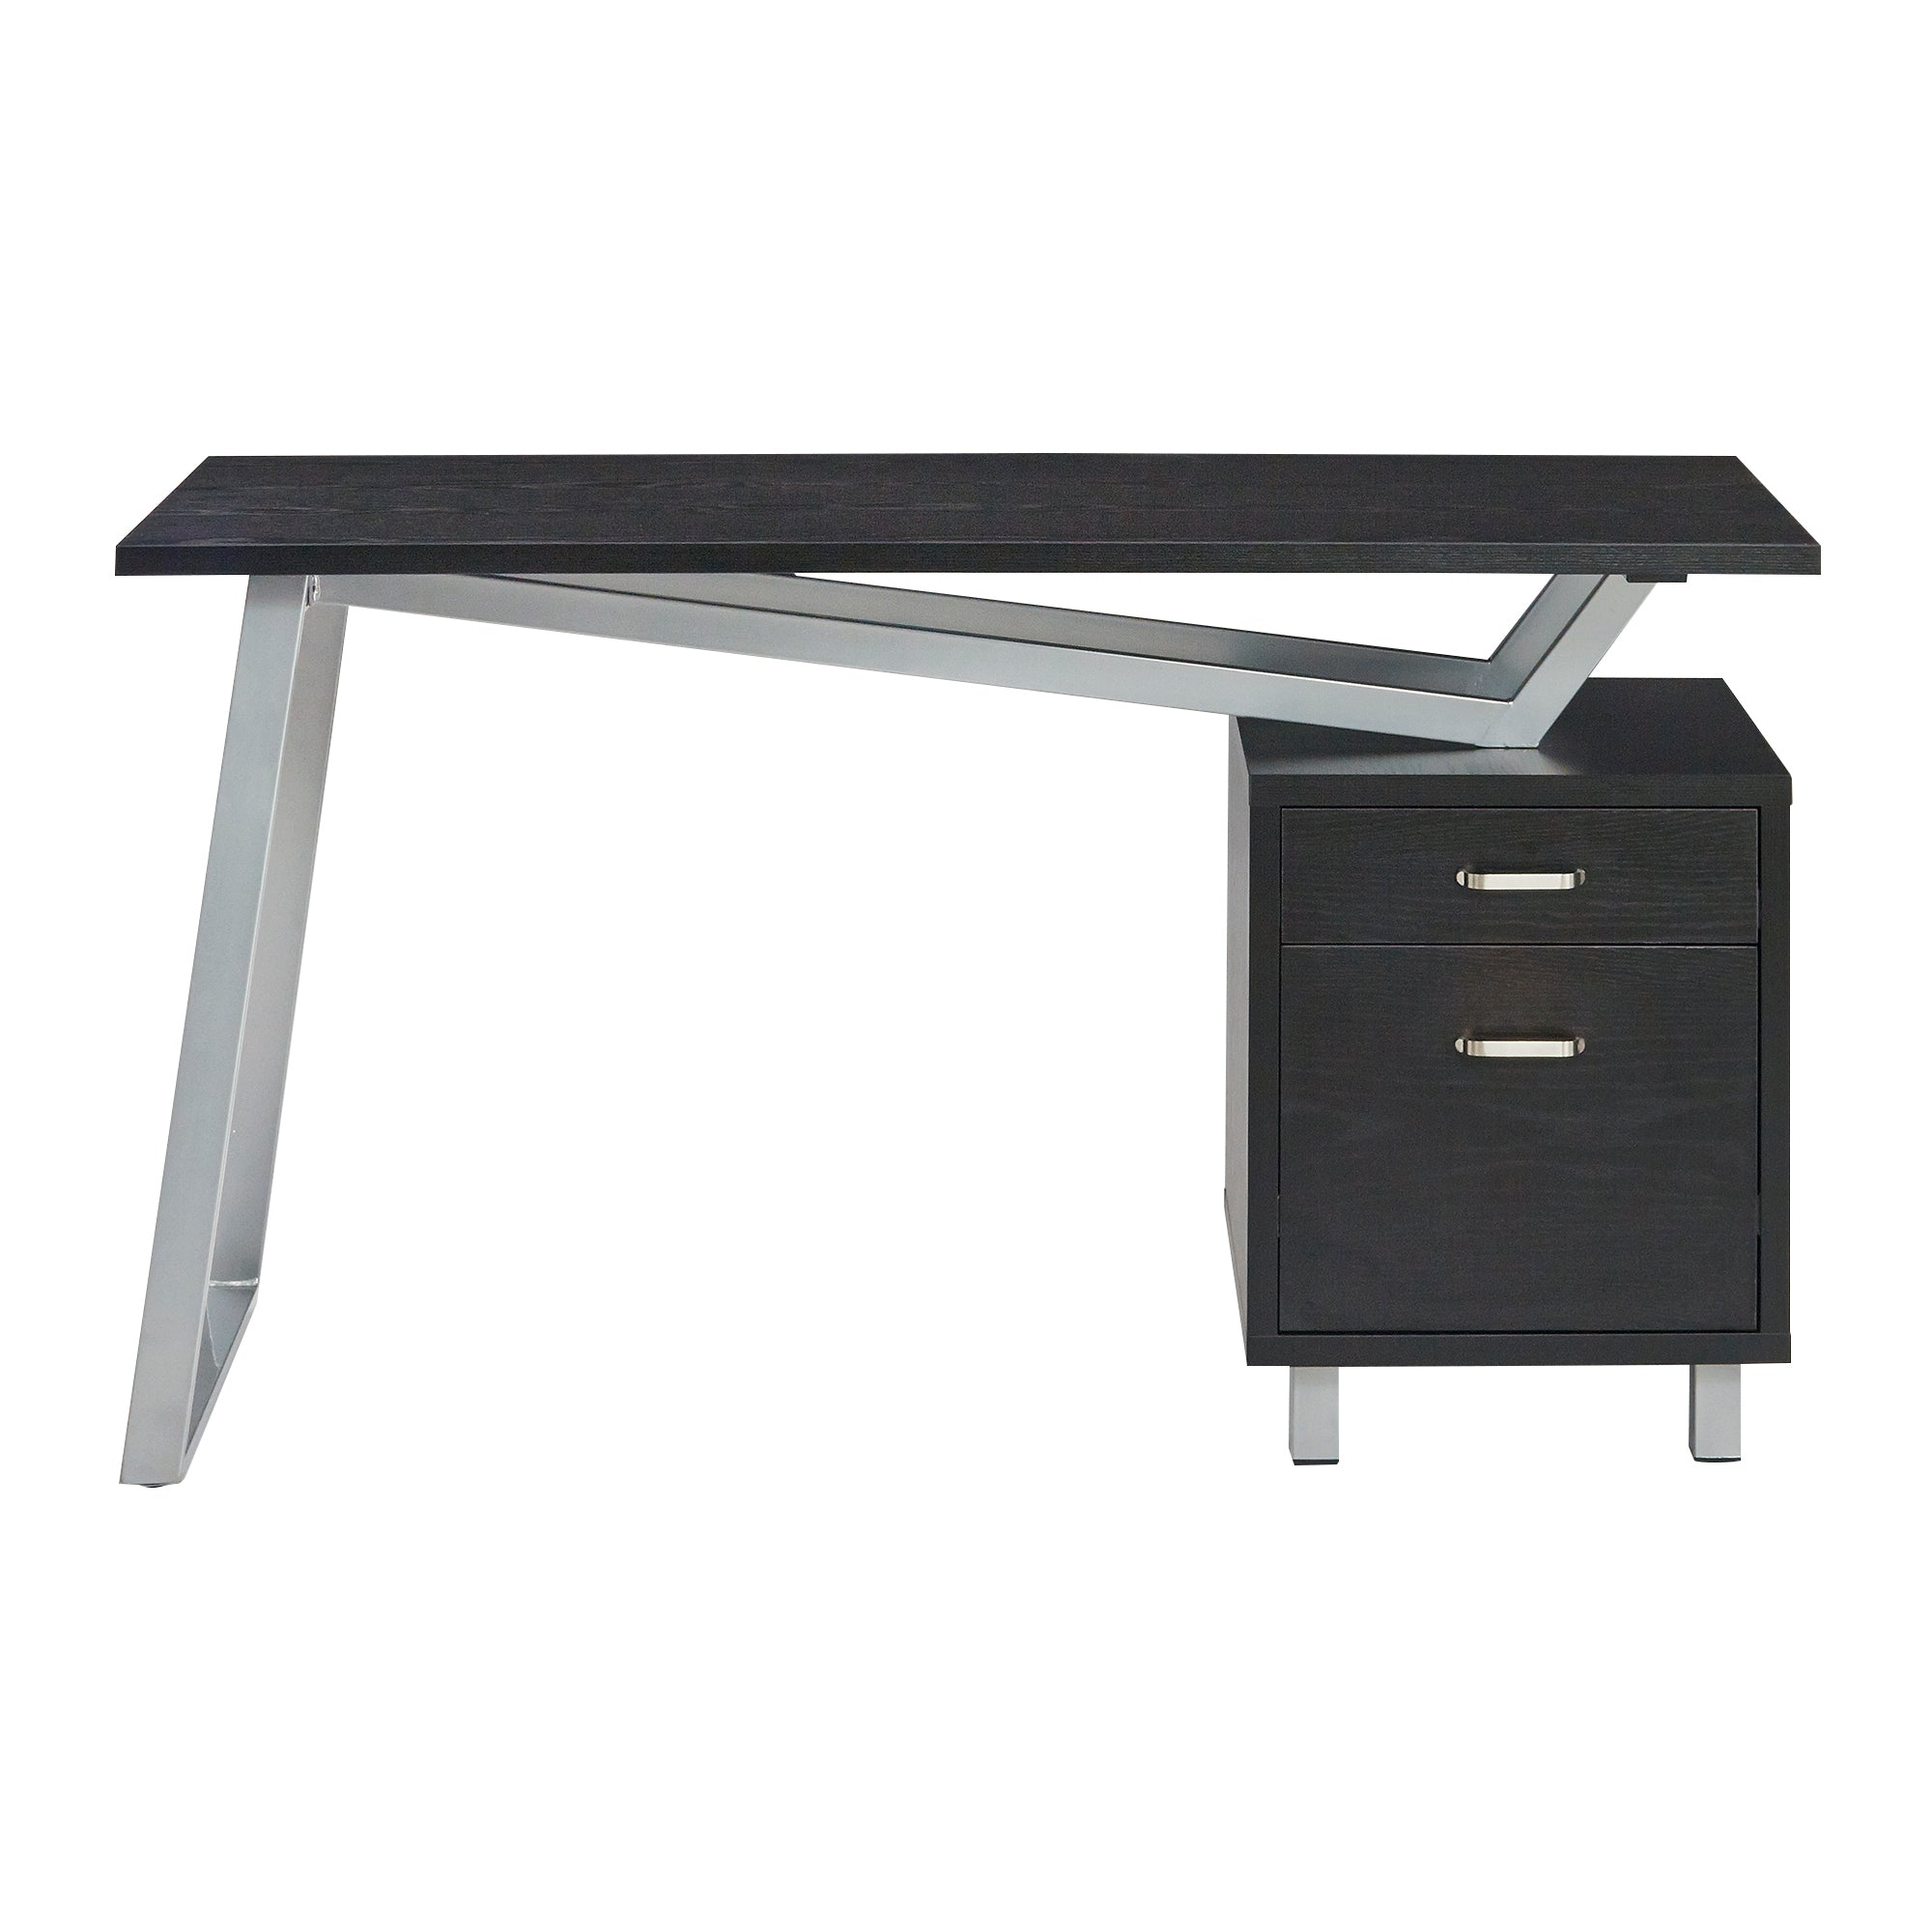 Unique V-Style Desk with Glass Top in Black